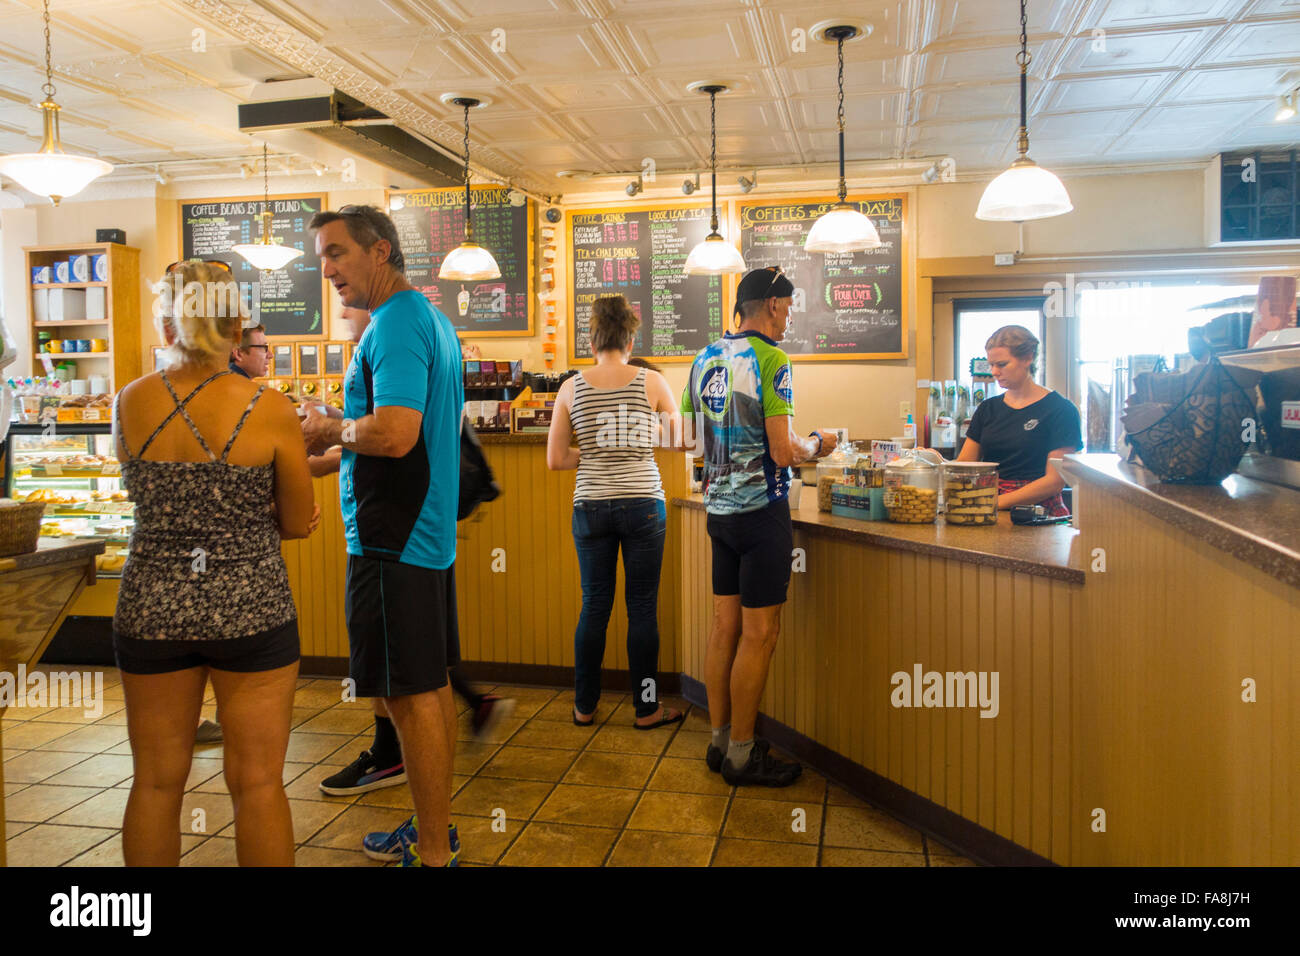 breaking new grounds coffee shop in Portsmouth NH Stock Photo